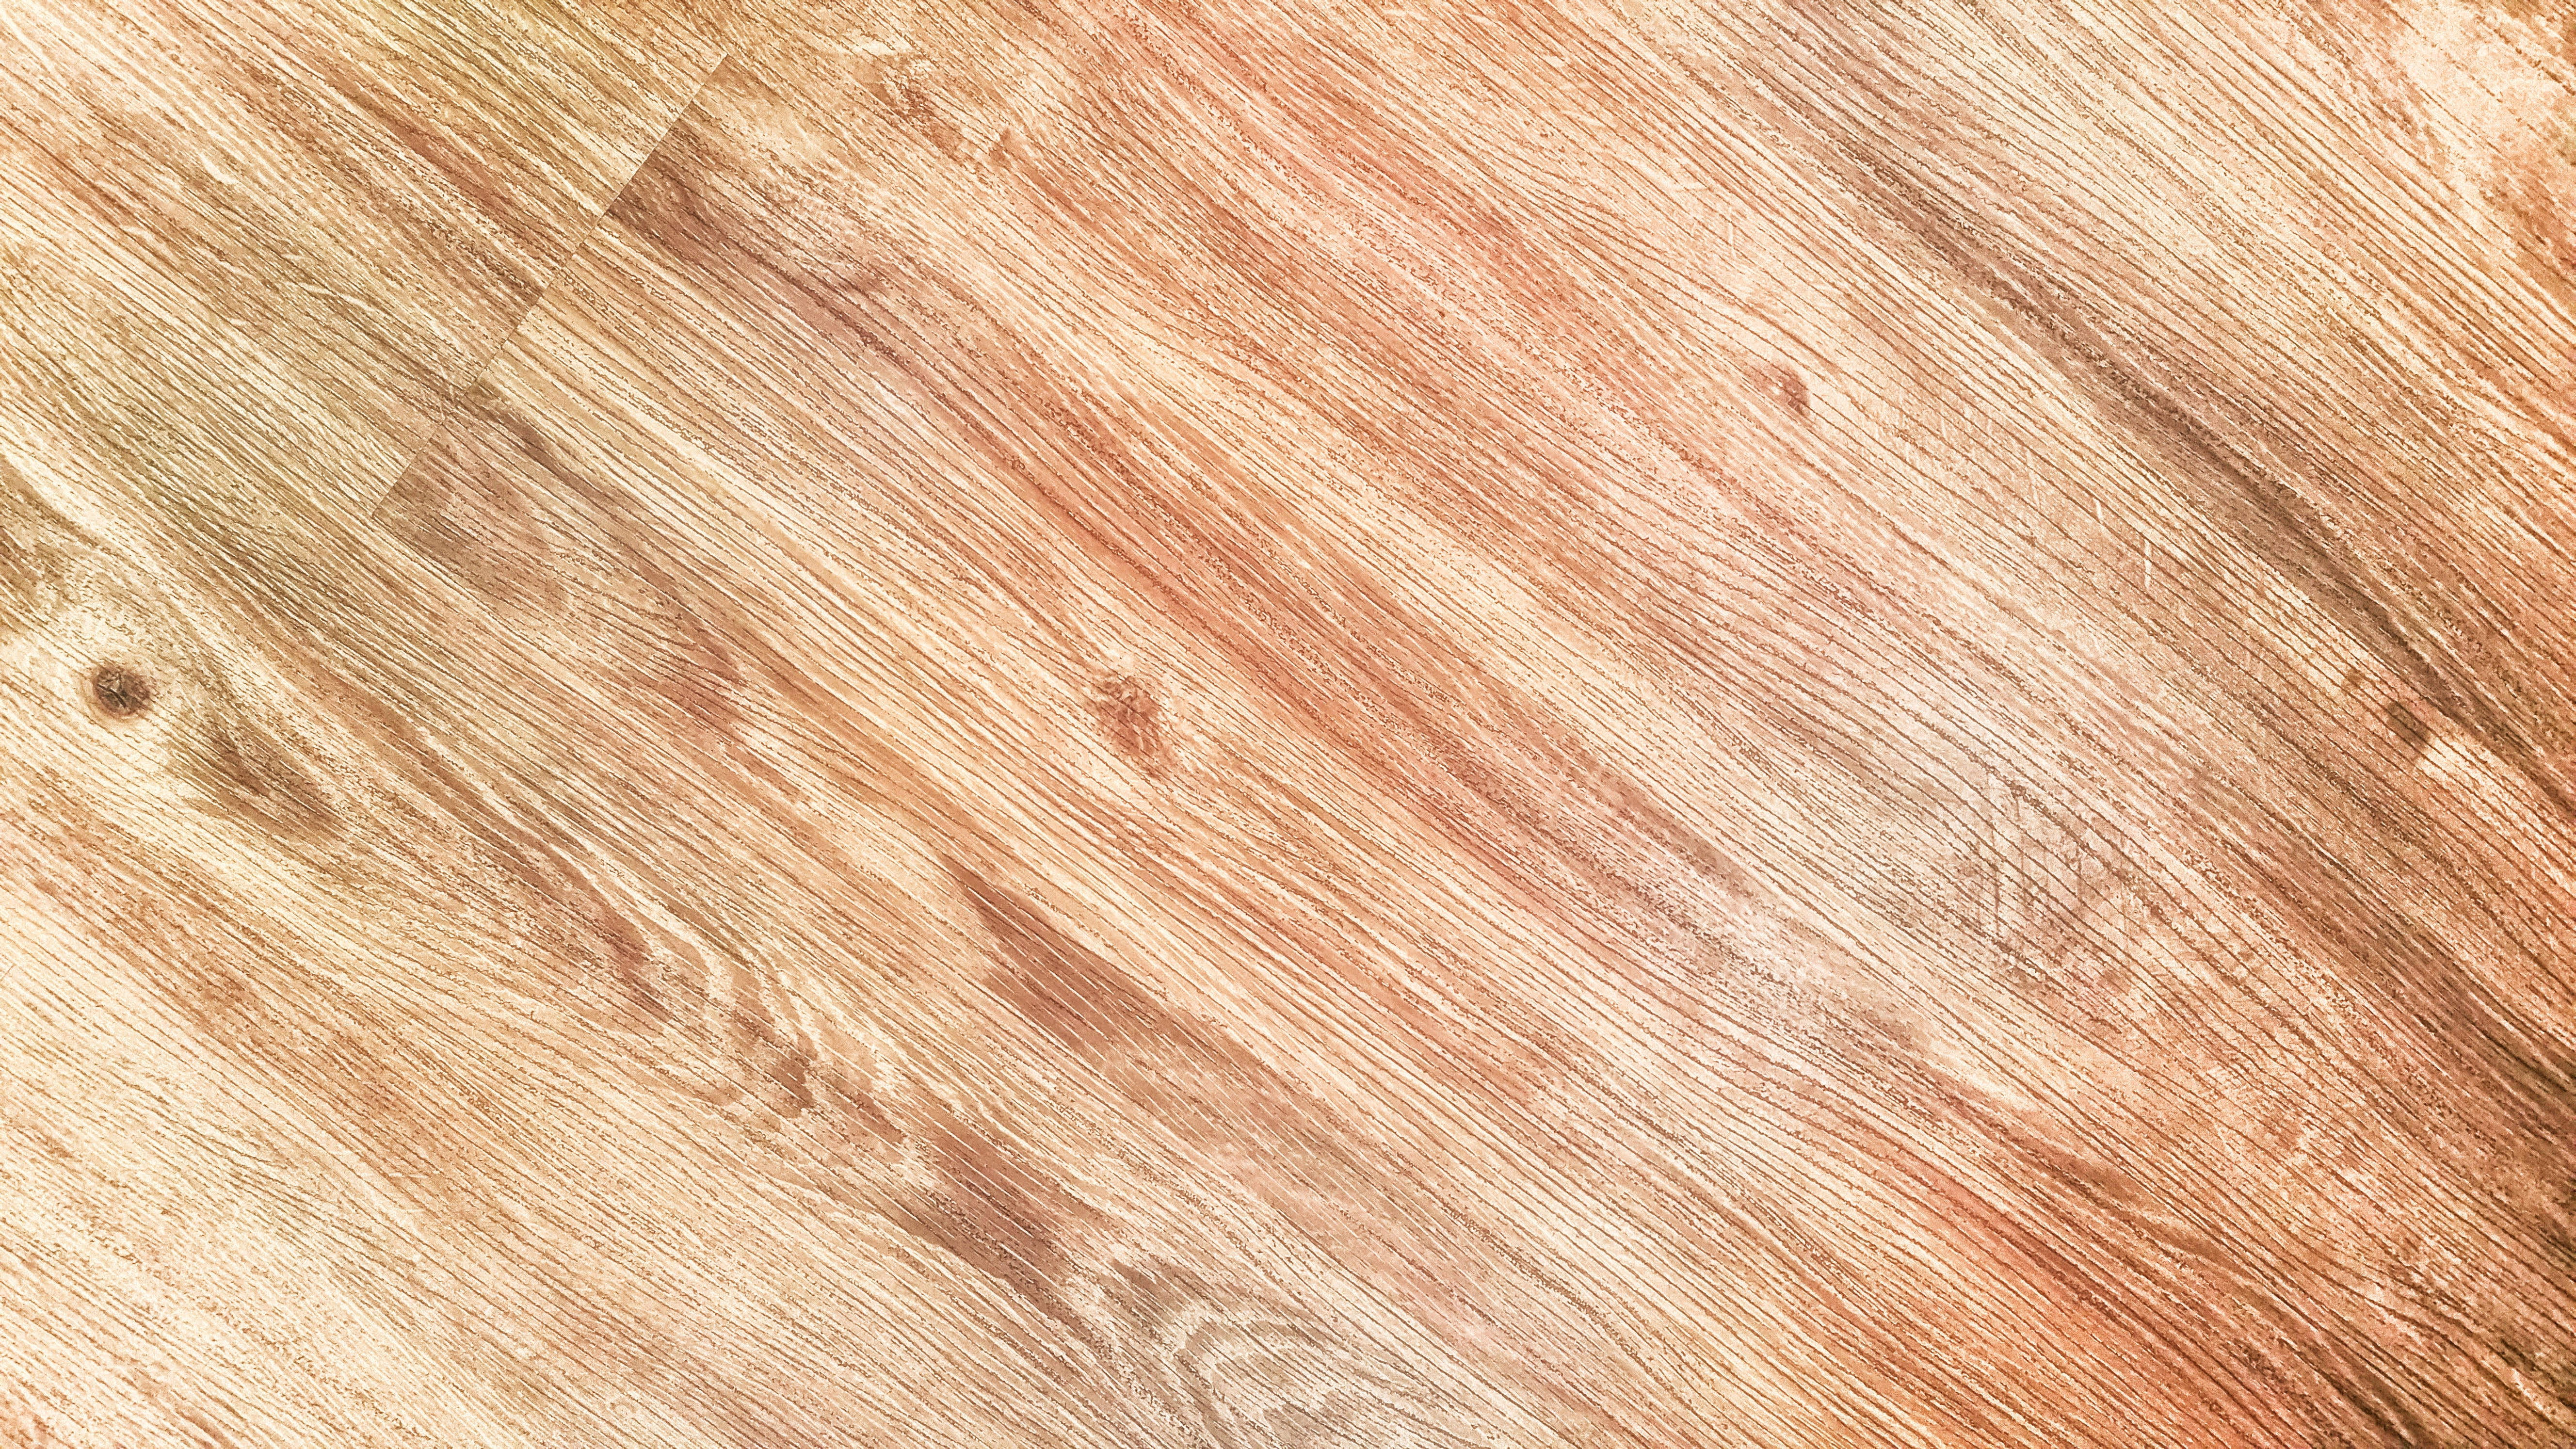 Wood table background hd - Brown Wooden Surface